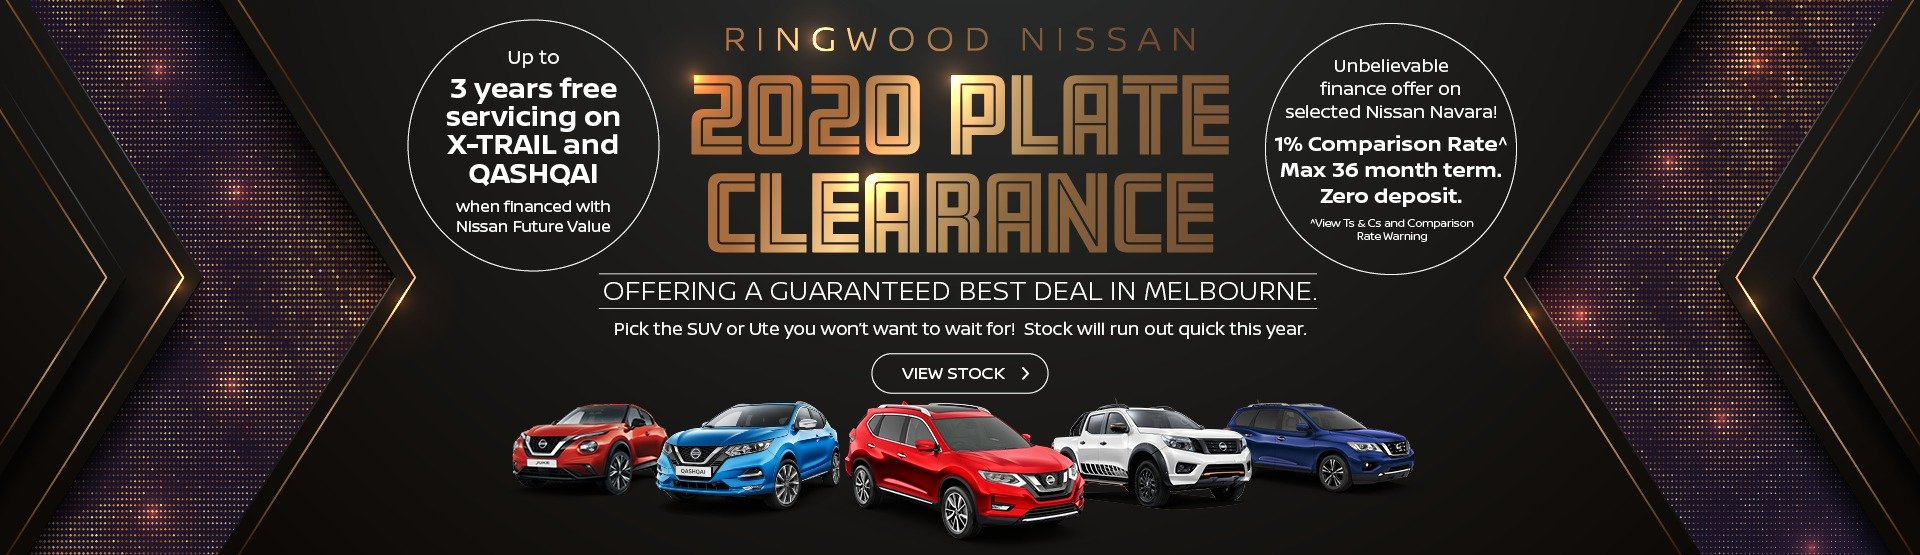 Ringwood Nissan 2020 Plate Clearance